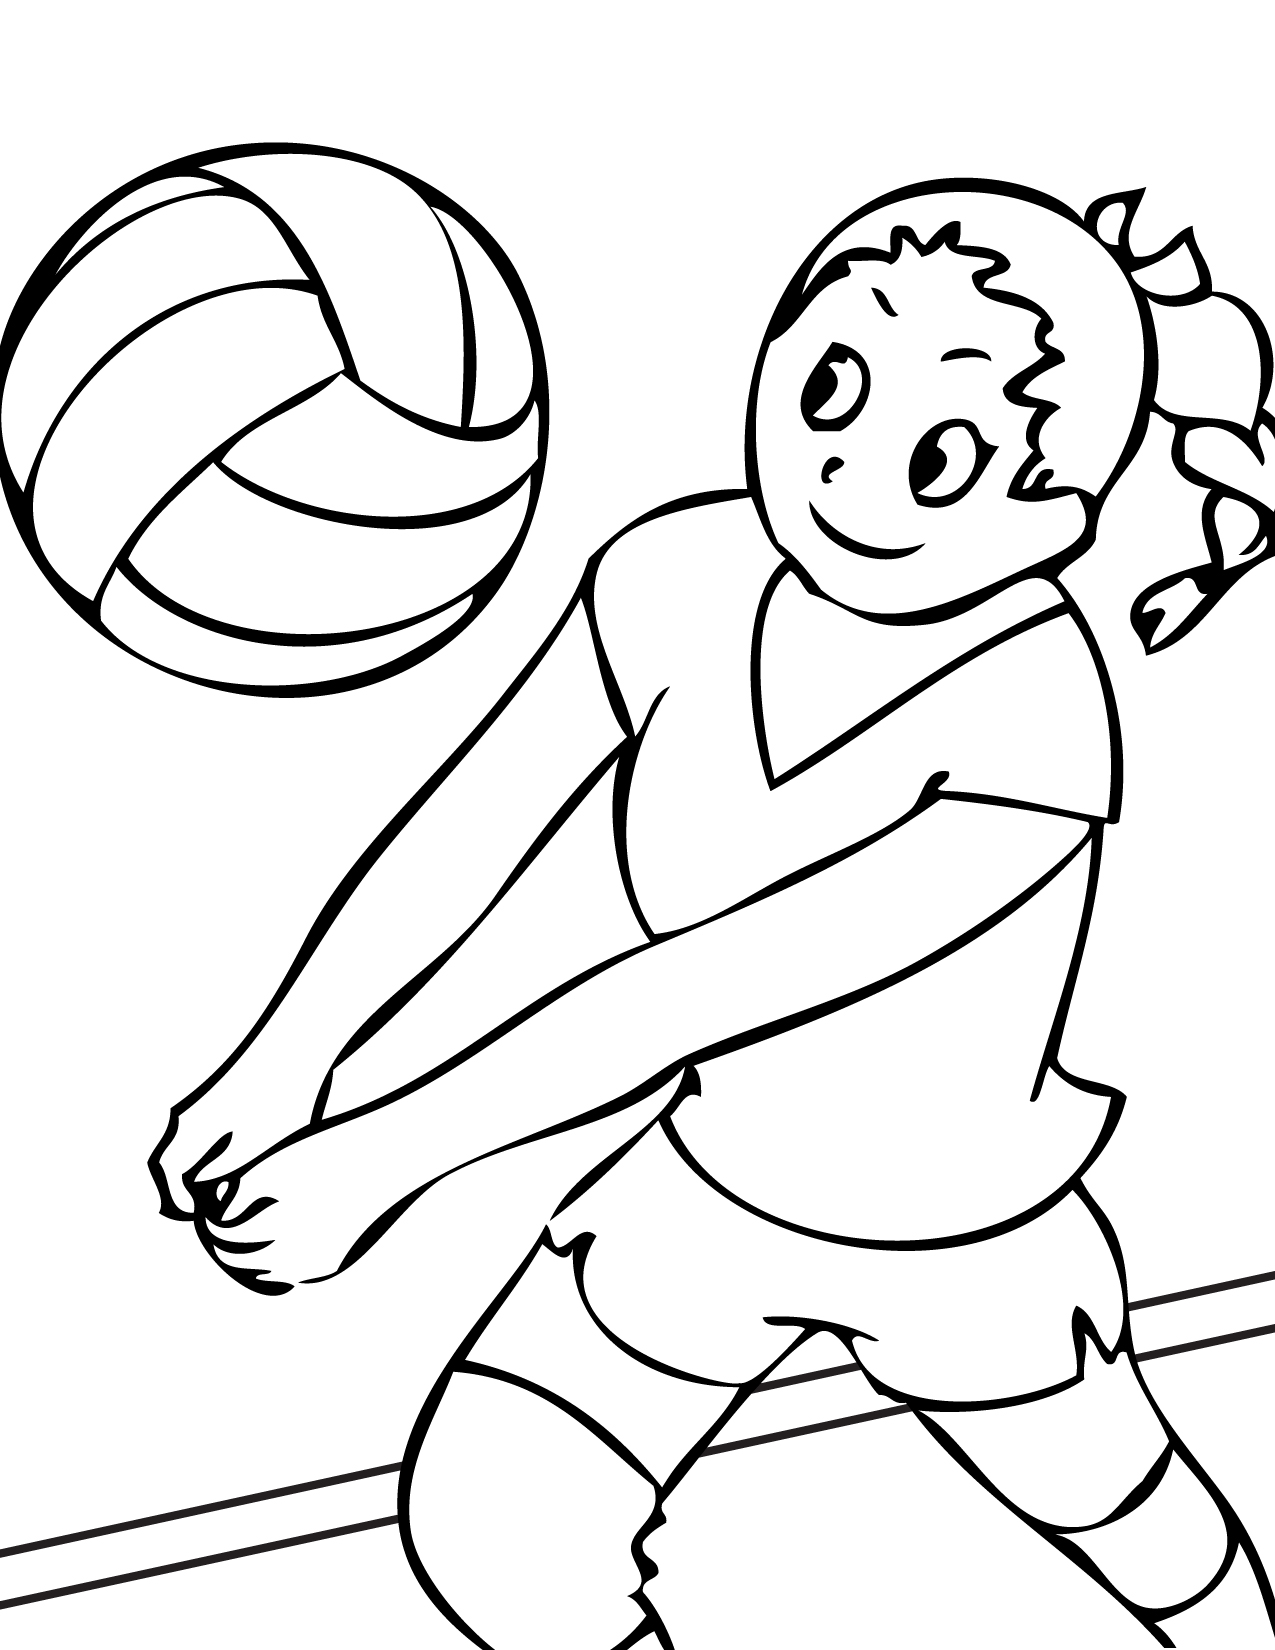 friendly coloring pages - photo#22